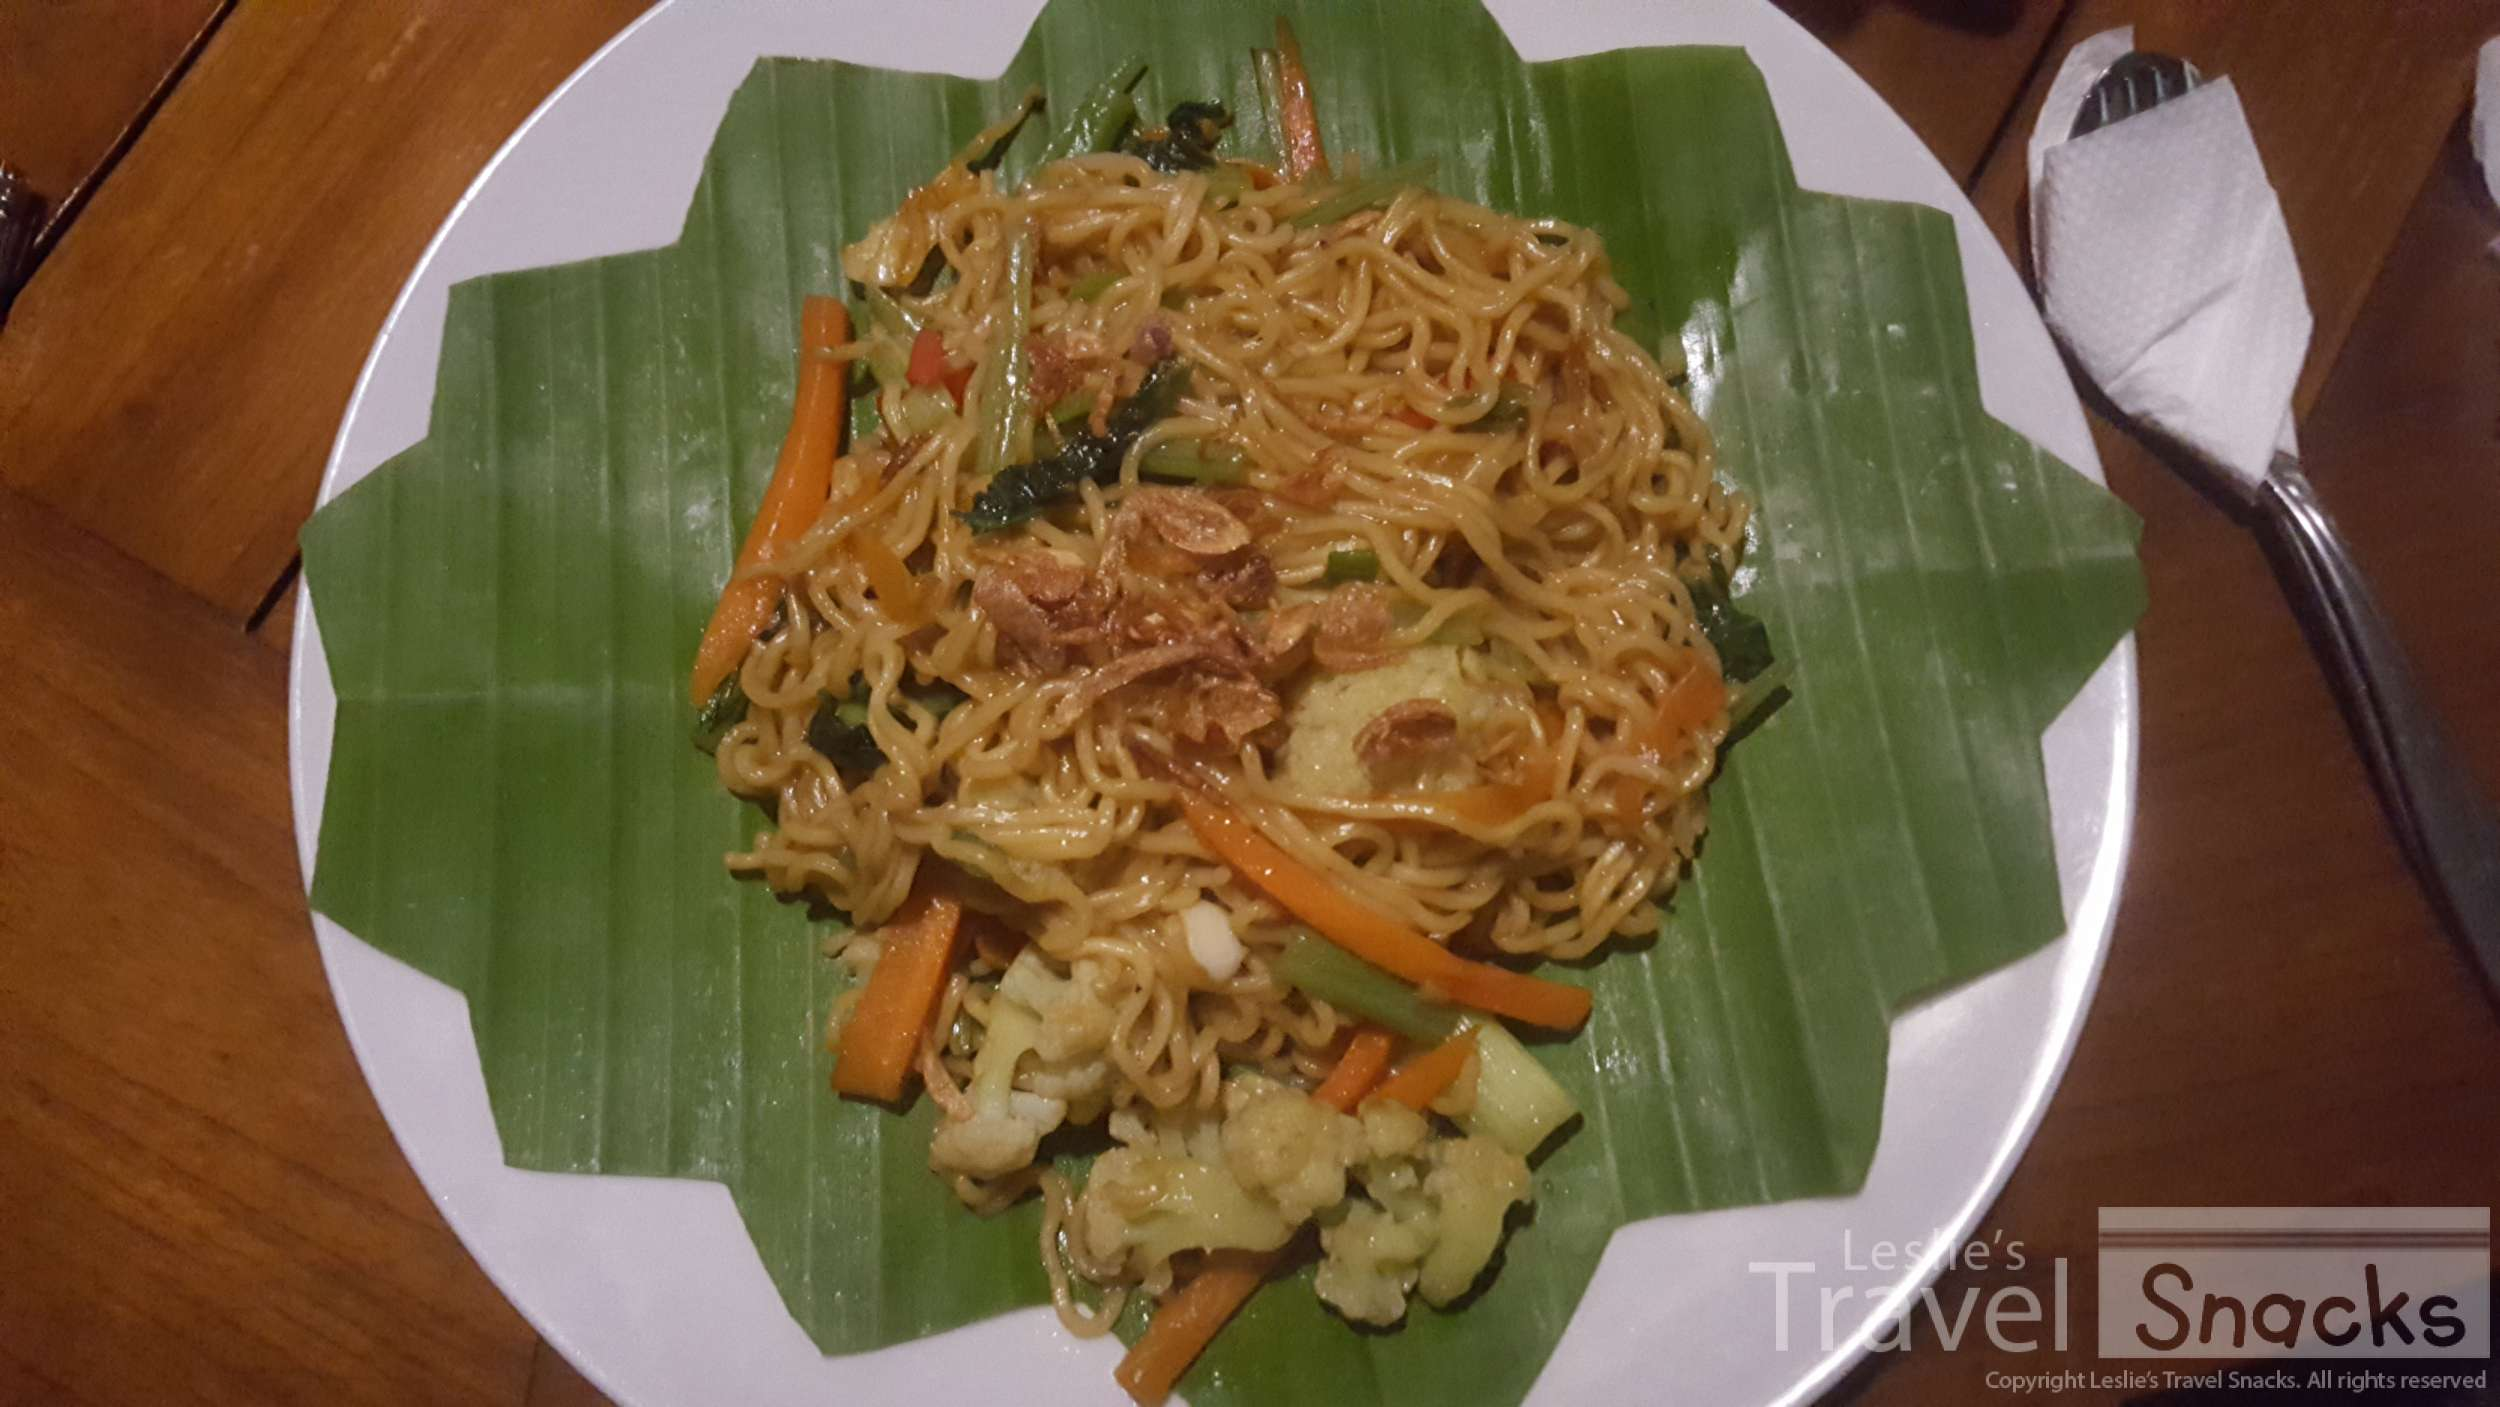 Vegetarian mei goreng, a typical meal in Indonesia